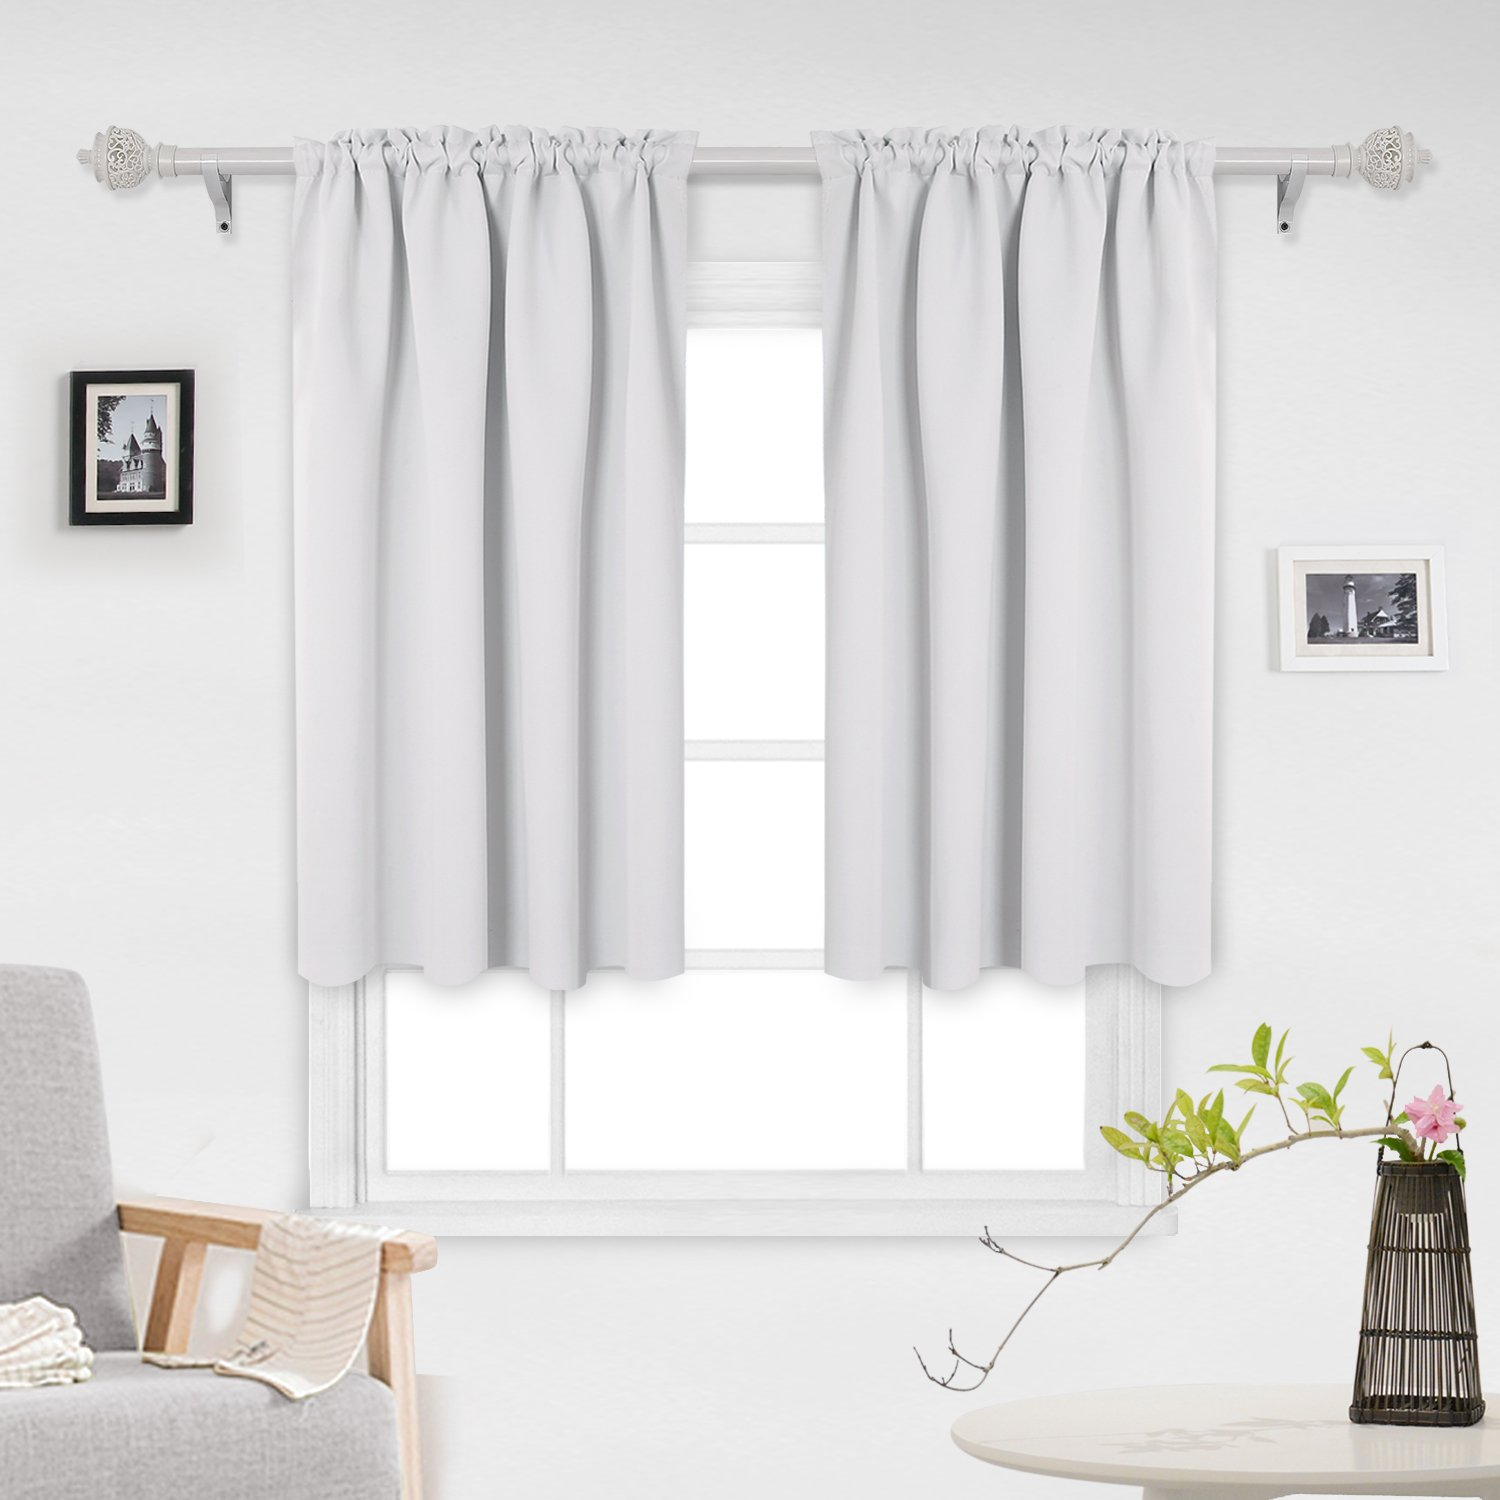 Deconovo Solid Color Light Blocking Curtains Rod Pocket Panels Thermal Insulated Blackout Curtains for Living Room 52W x 45L Inch Greyish White 1 Pair